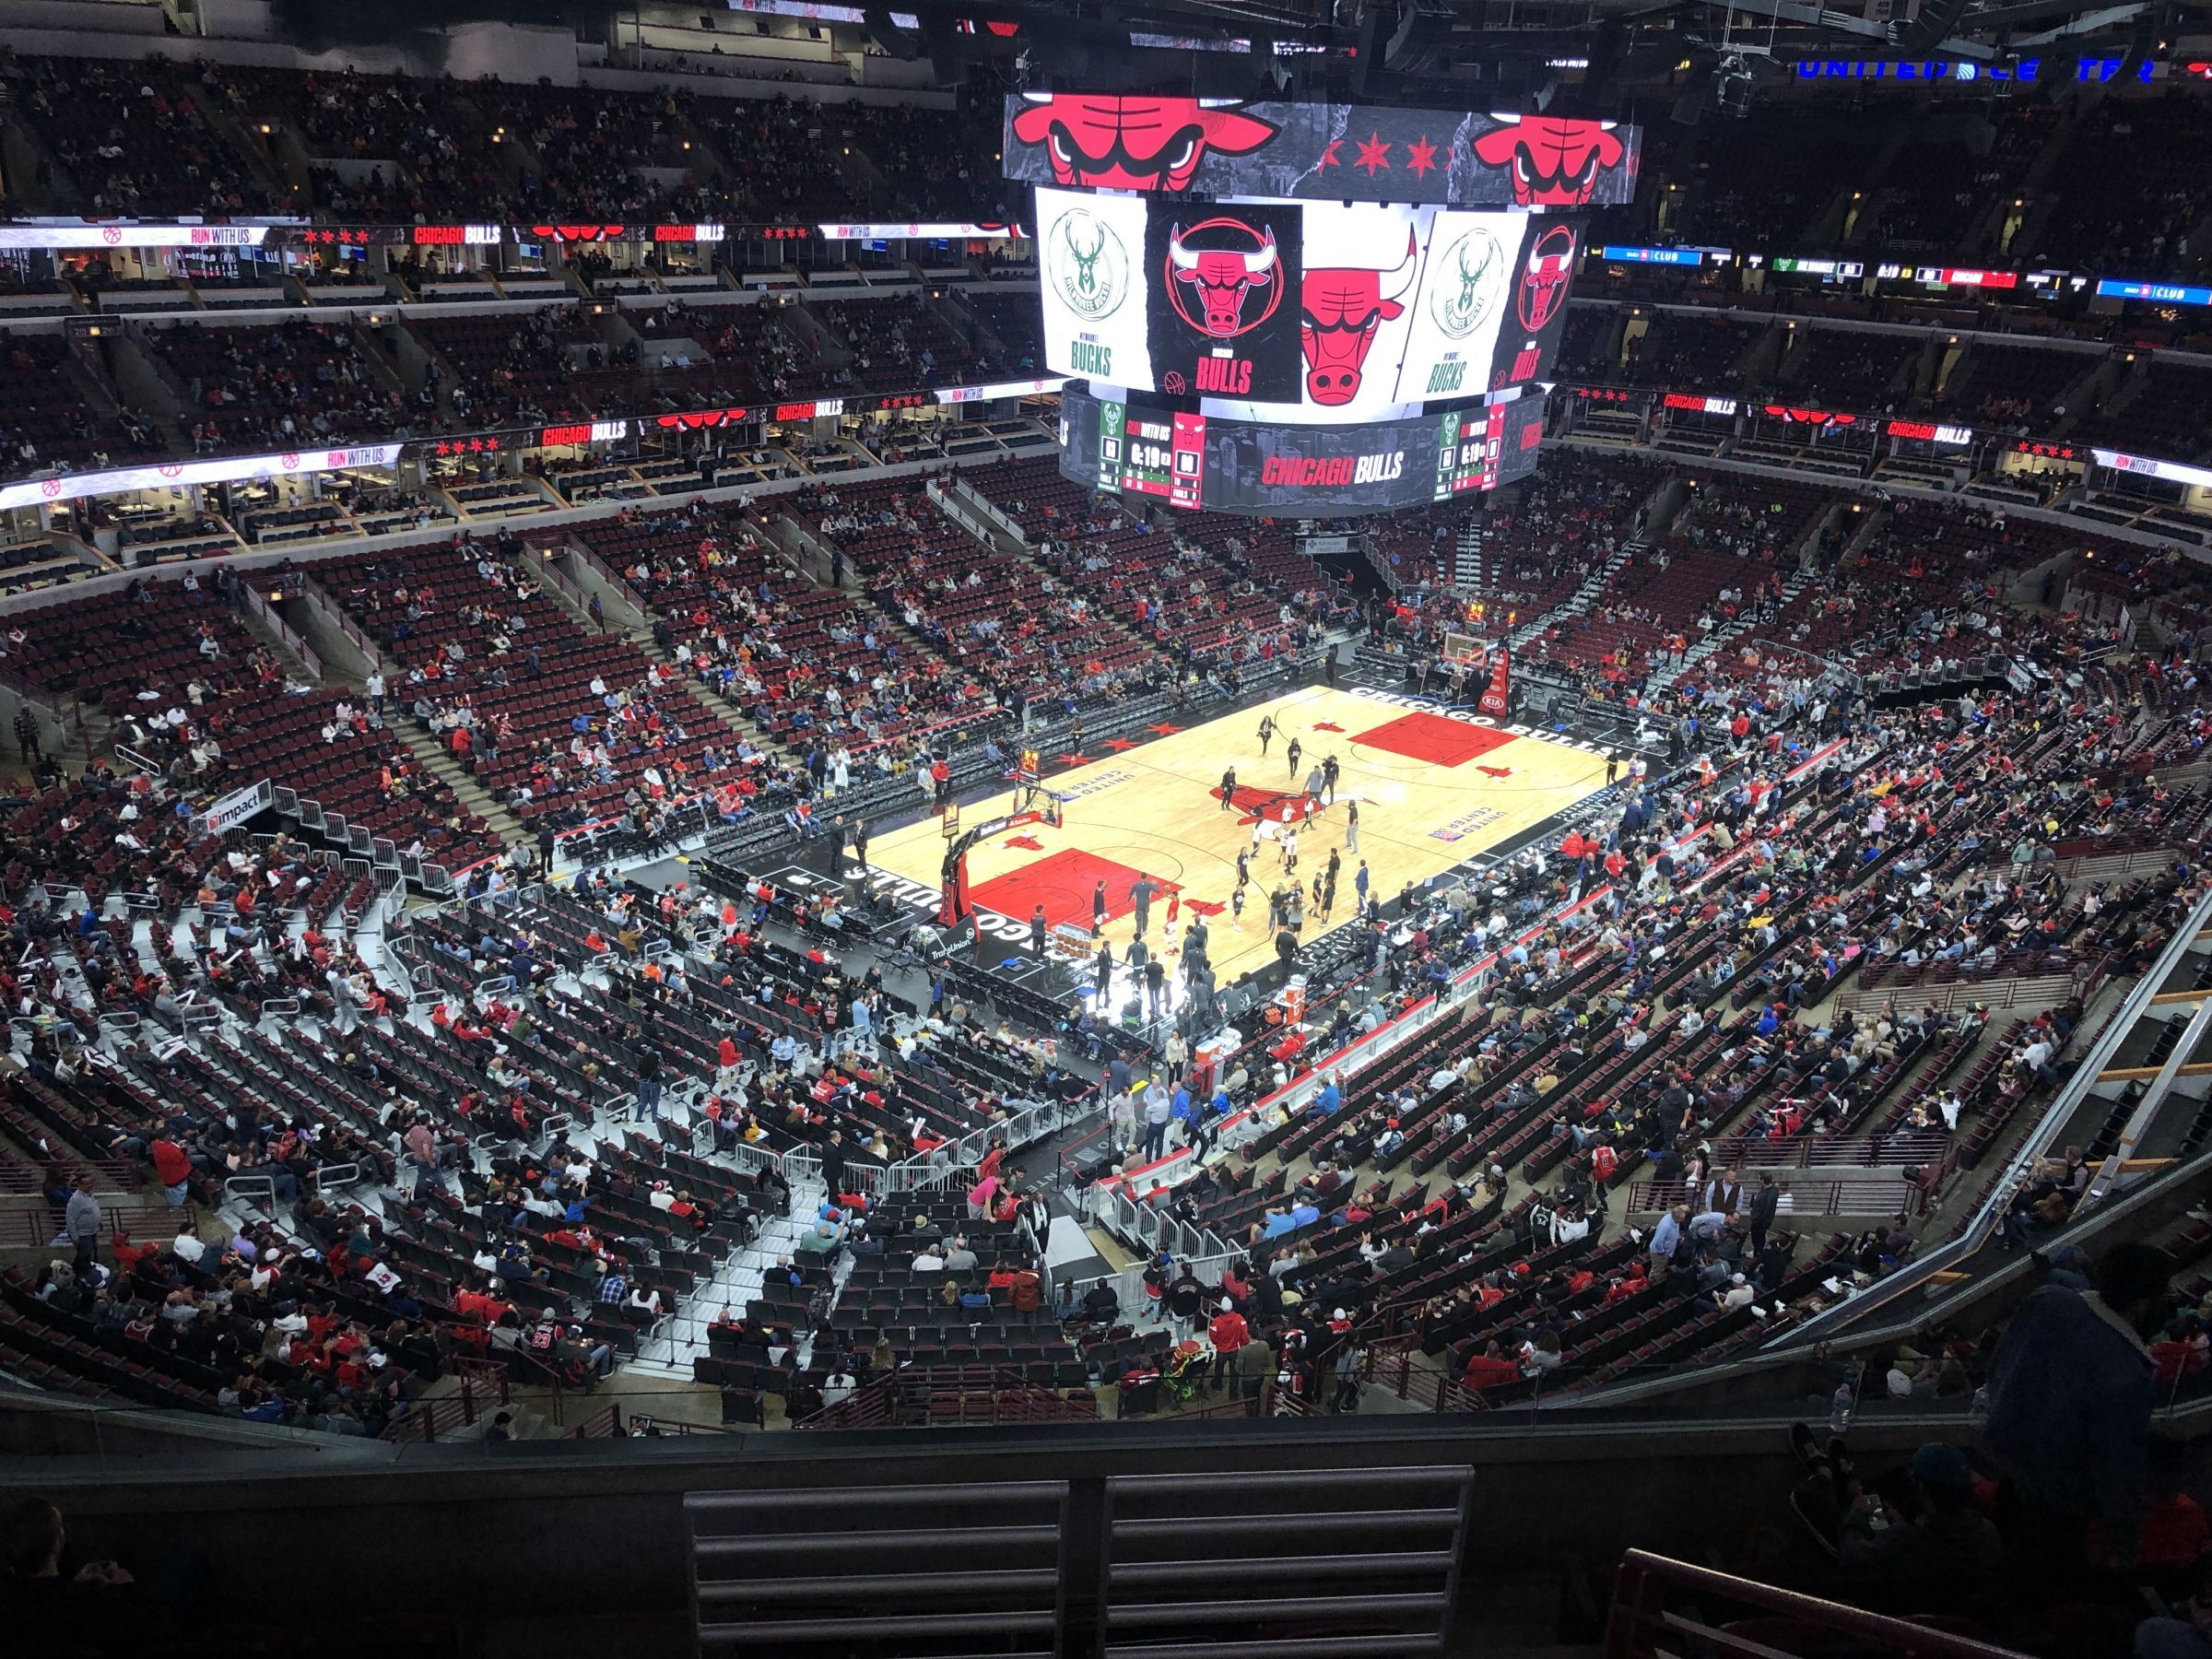 Section 306 seat view